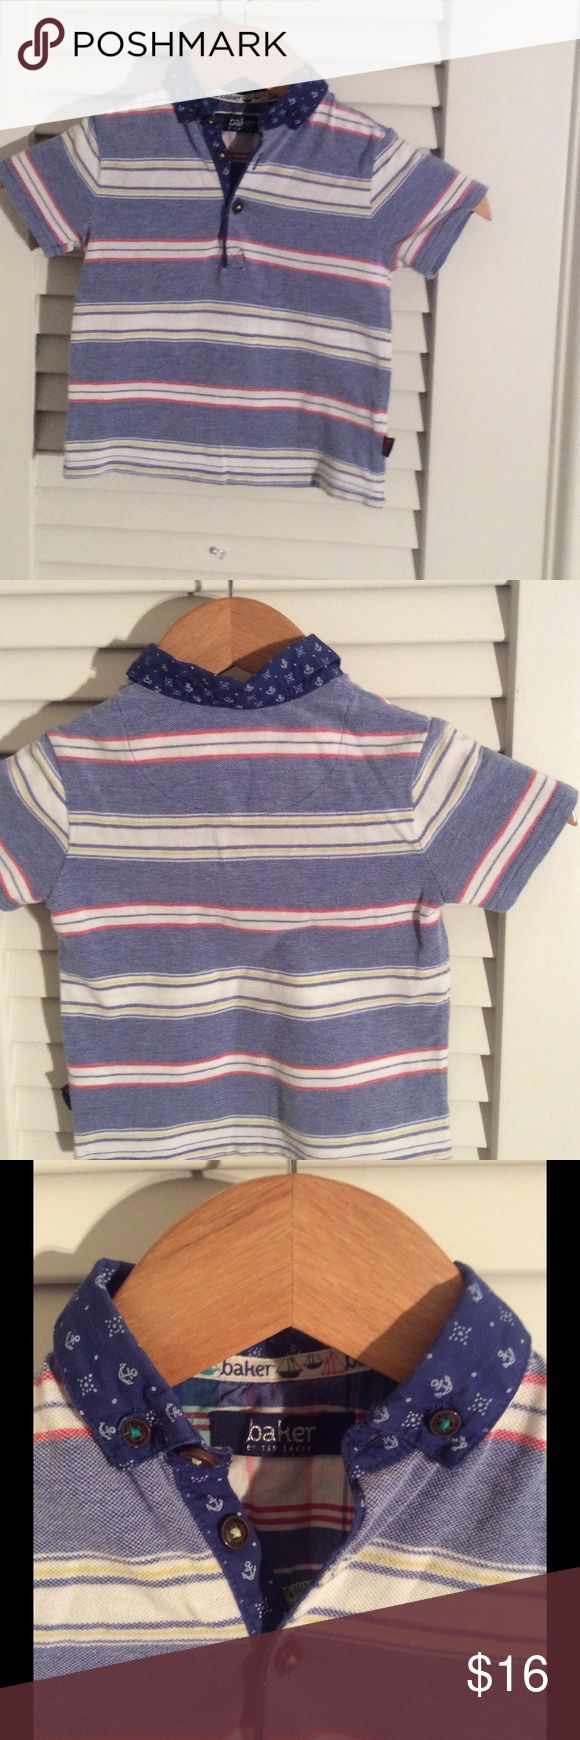 🦁🦁 Boys Baker by Ted Baker stripe knit. Just in time for Easter!!  Boys fancy stripe knit with nautical woven collar, from Baker by Ted Baker. Size 2Y.   All cotton m Baker by Ted Baker Shirts & Tops Polos